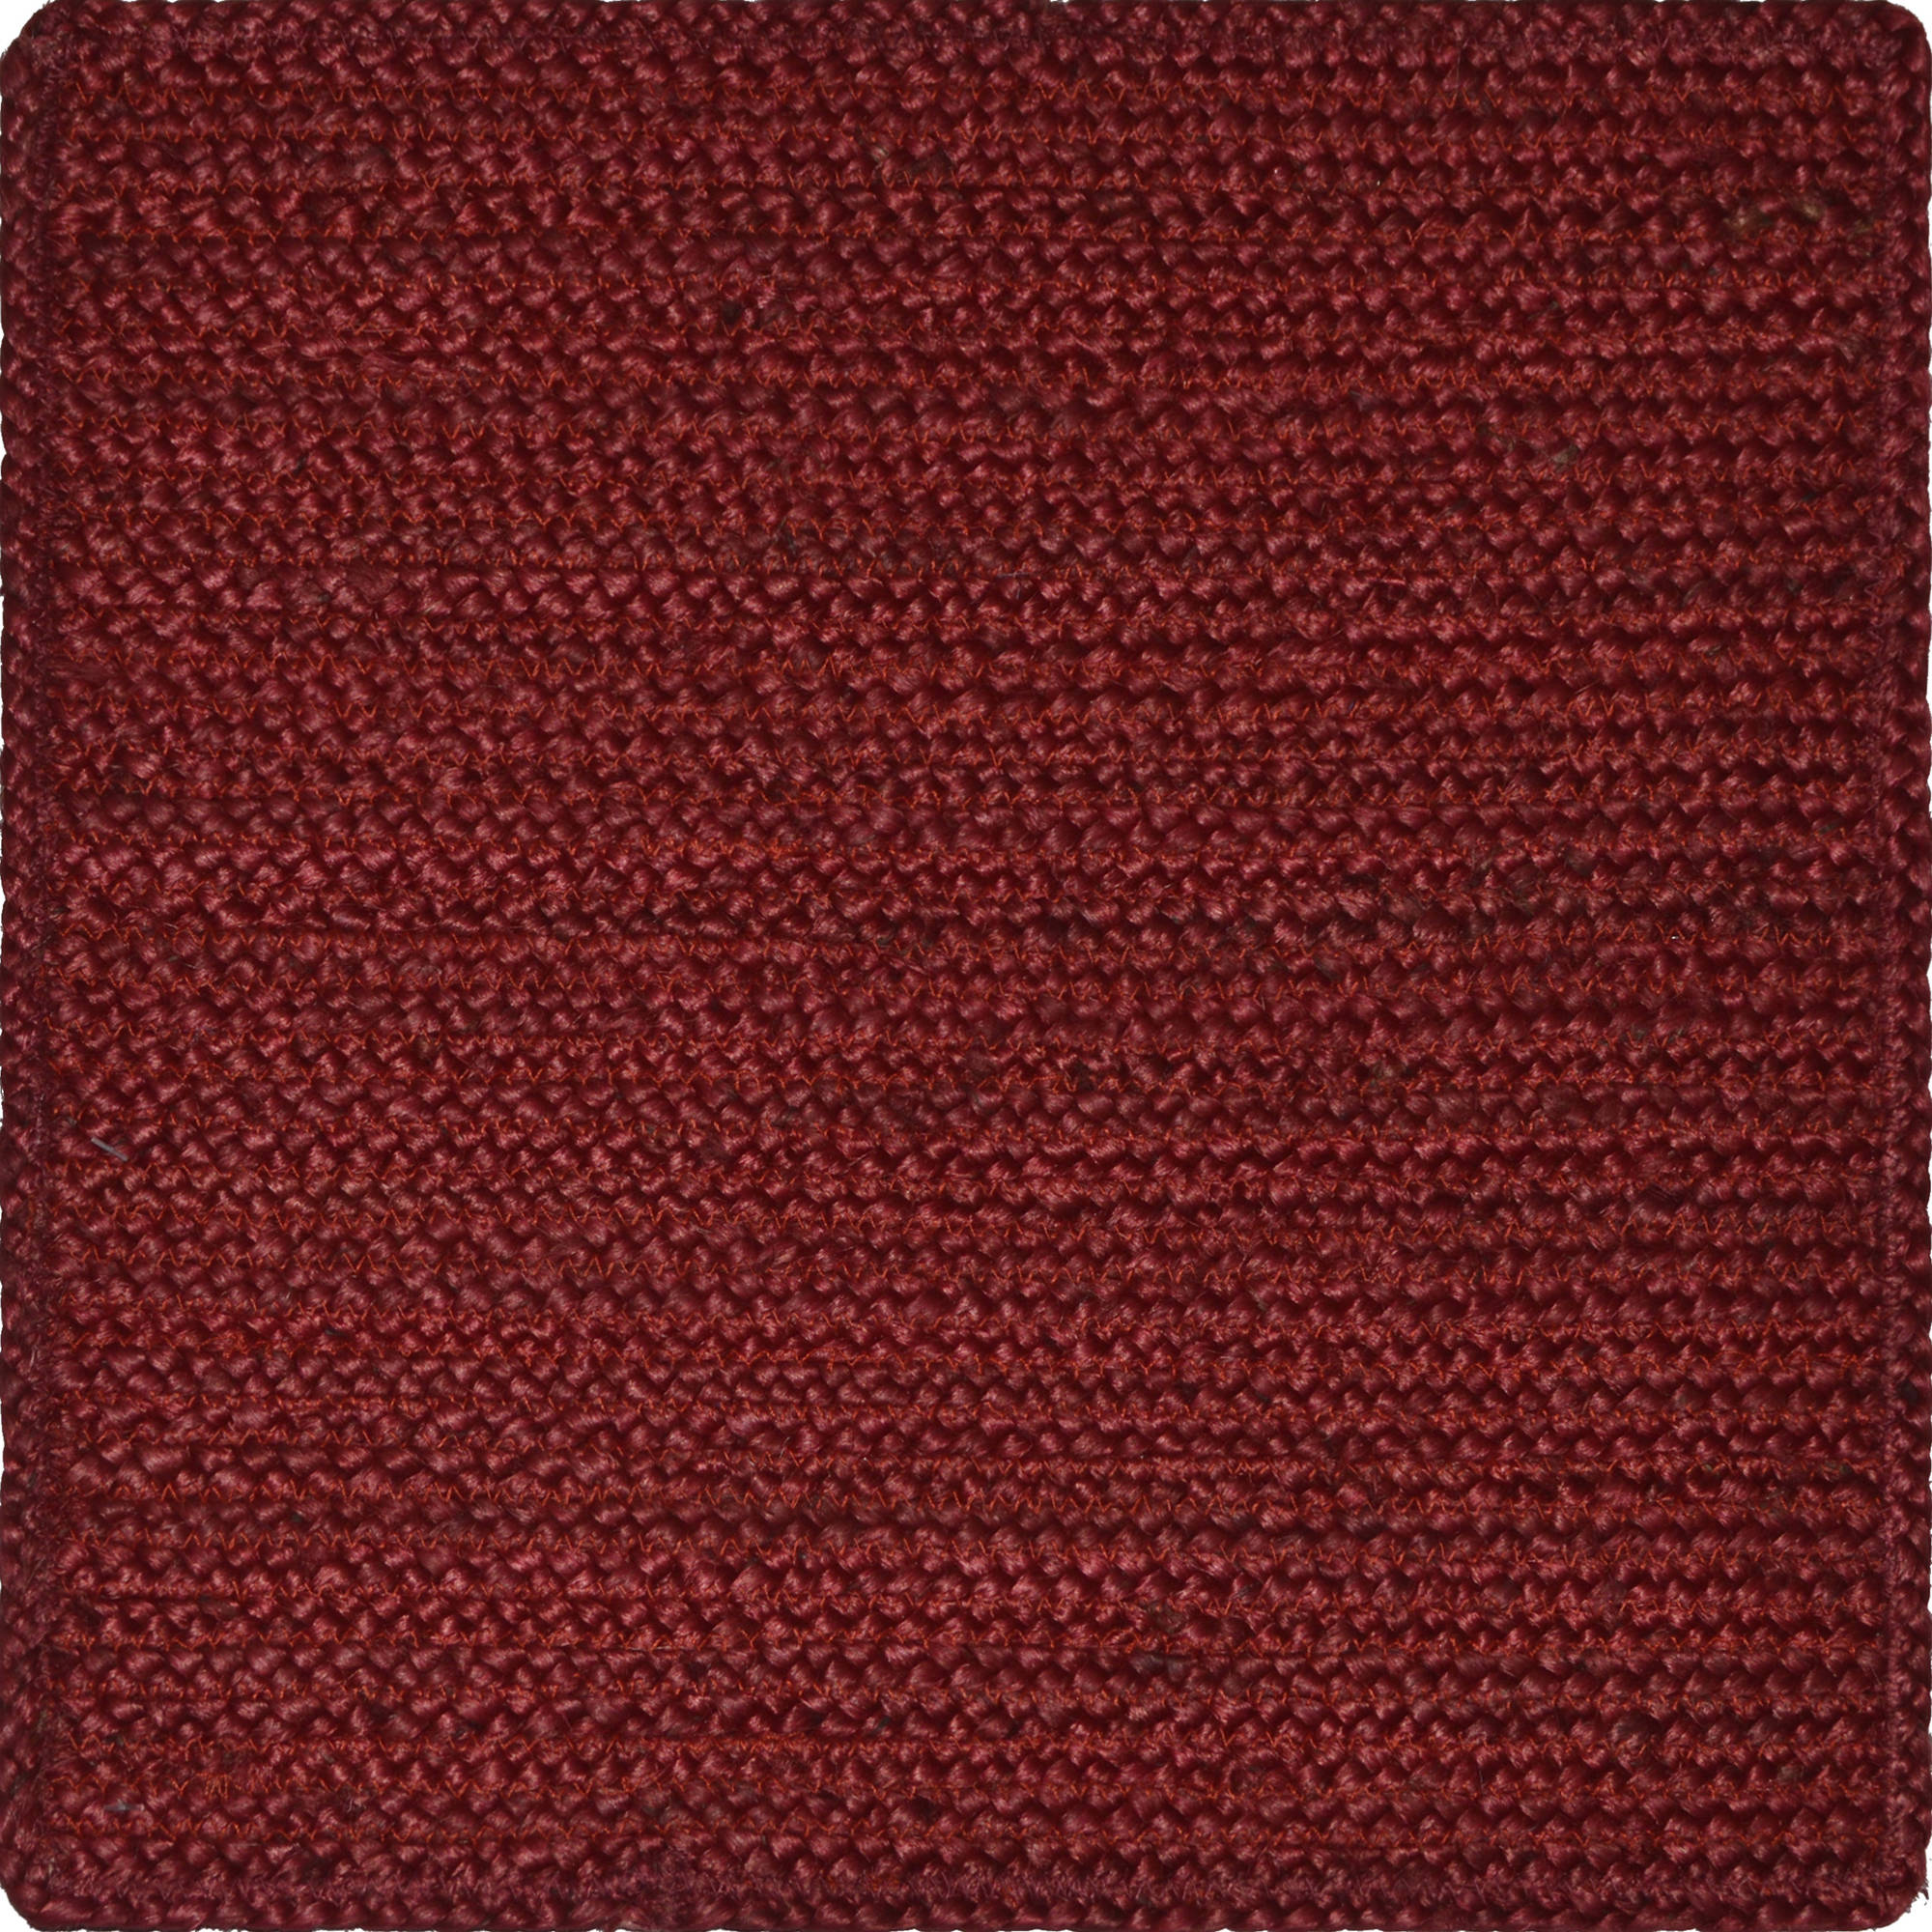 "Better Homes and Gardens Jute Braid 14"" Square Placemat, Red"